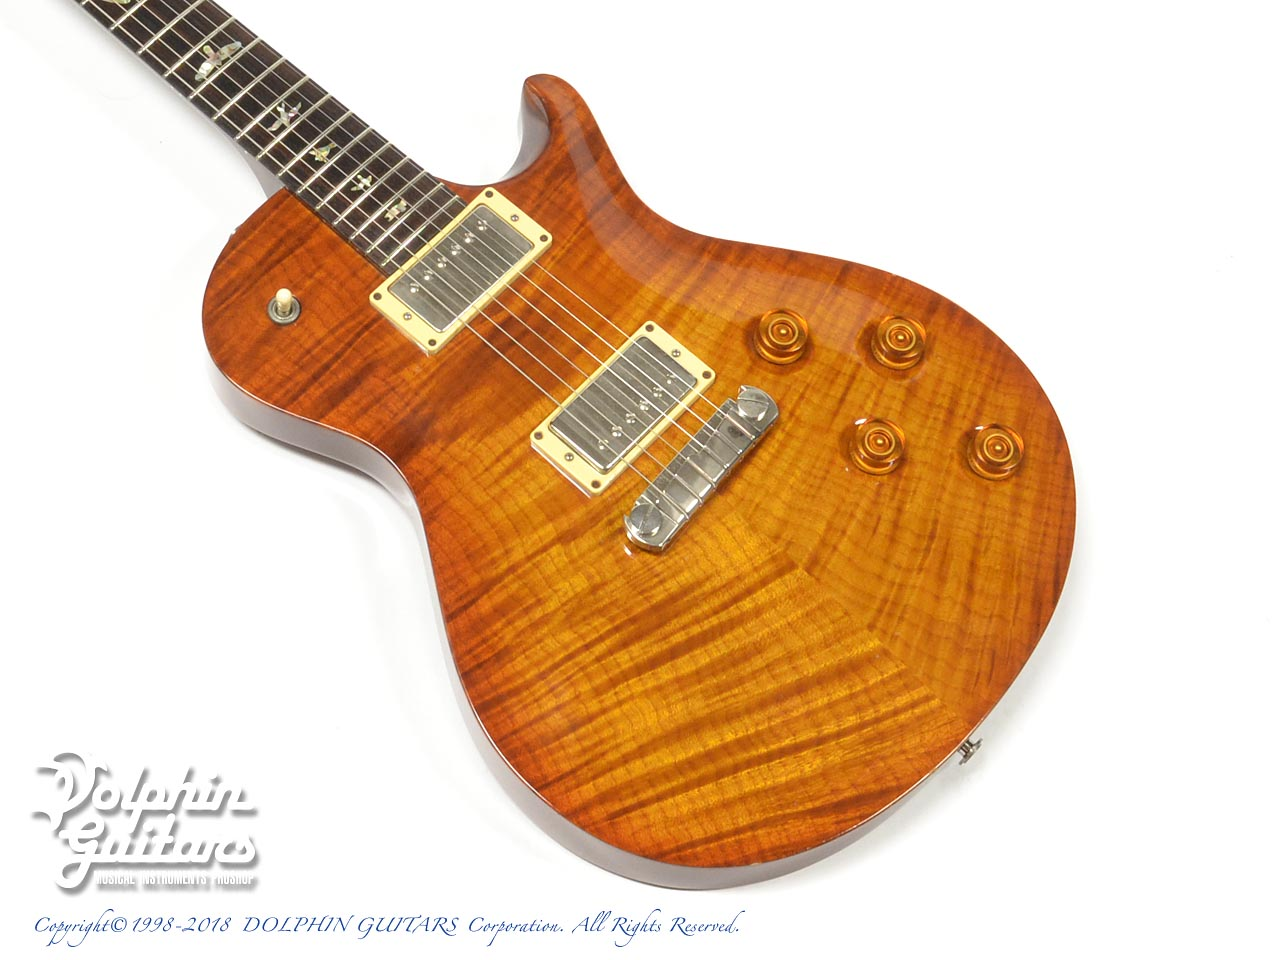 PAUL REED SMITH: Single Cut 10top (Violin Amber Burst) (1)